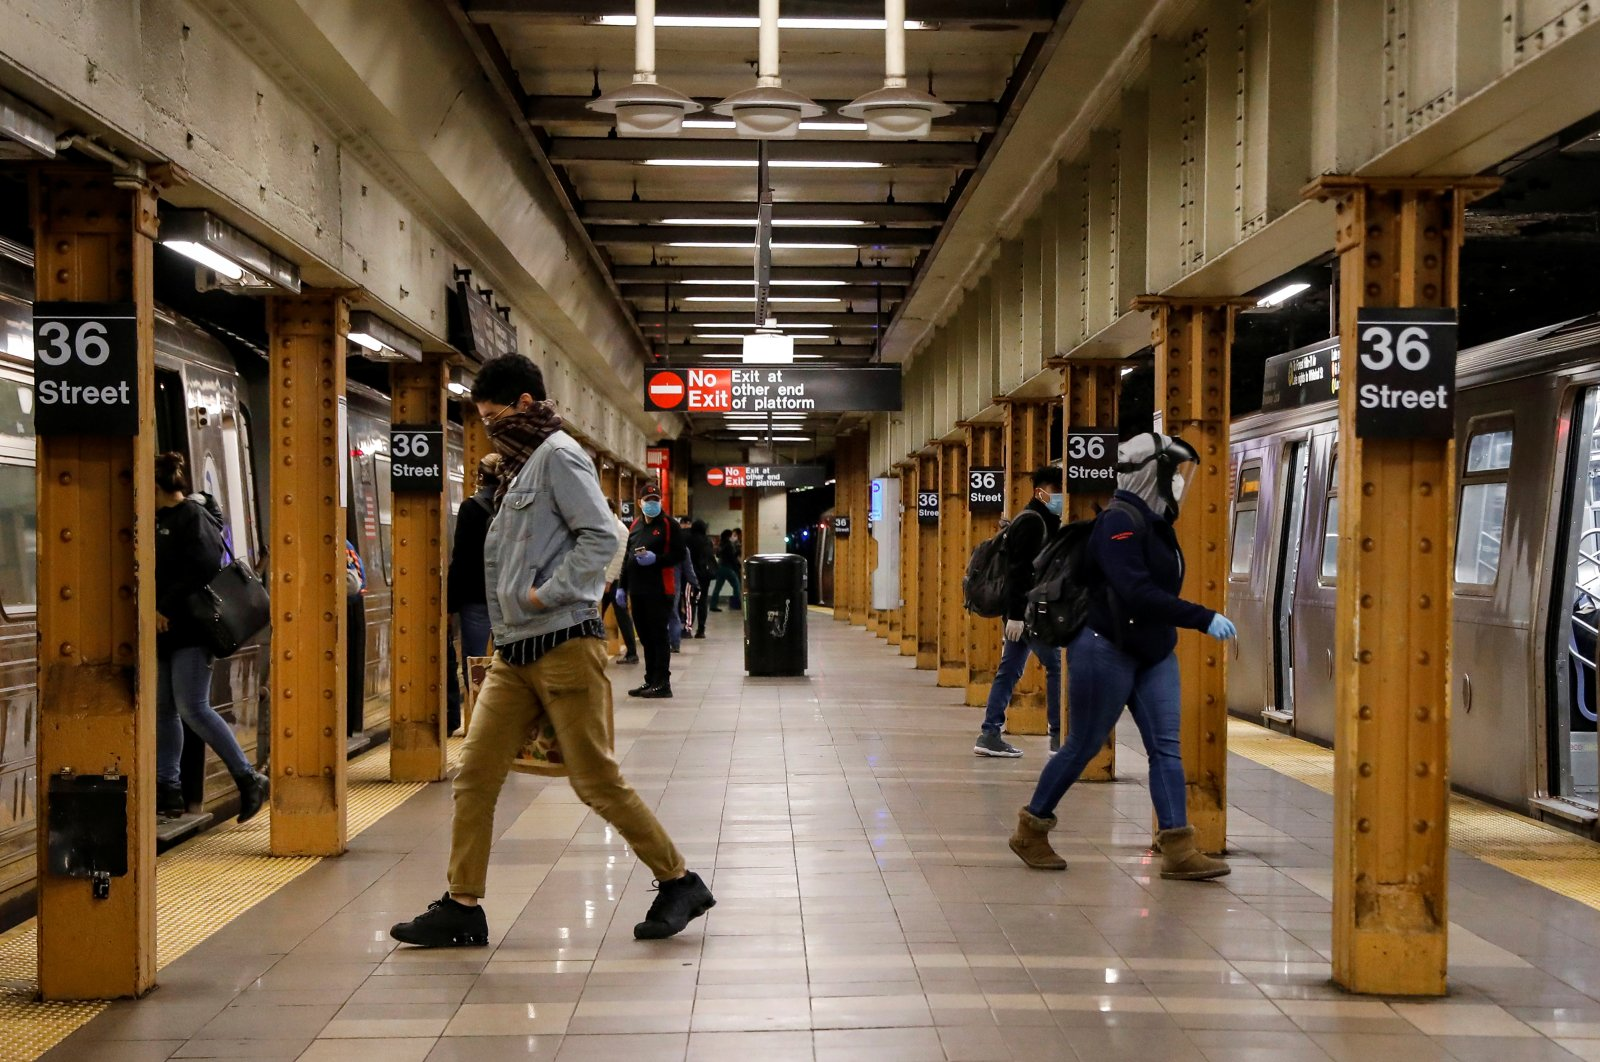 Morning commuters are seen at the subway station during the coronavirus outbreak in the Brooklyn borough of New York City, New York, U.S., May 14, 2020. (Reuters Photo)